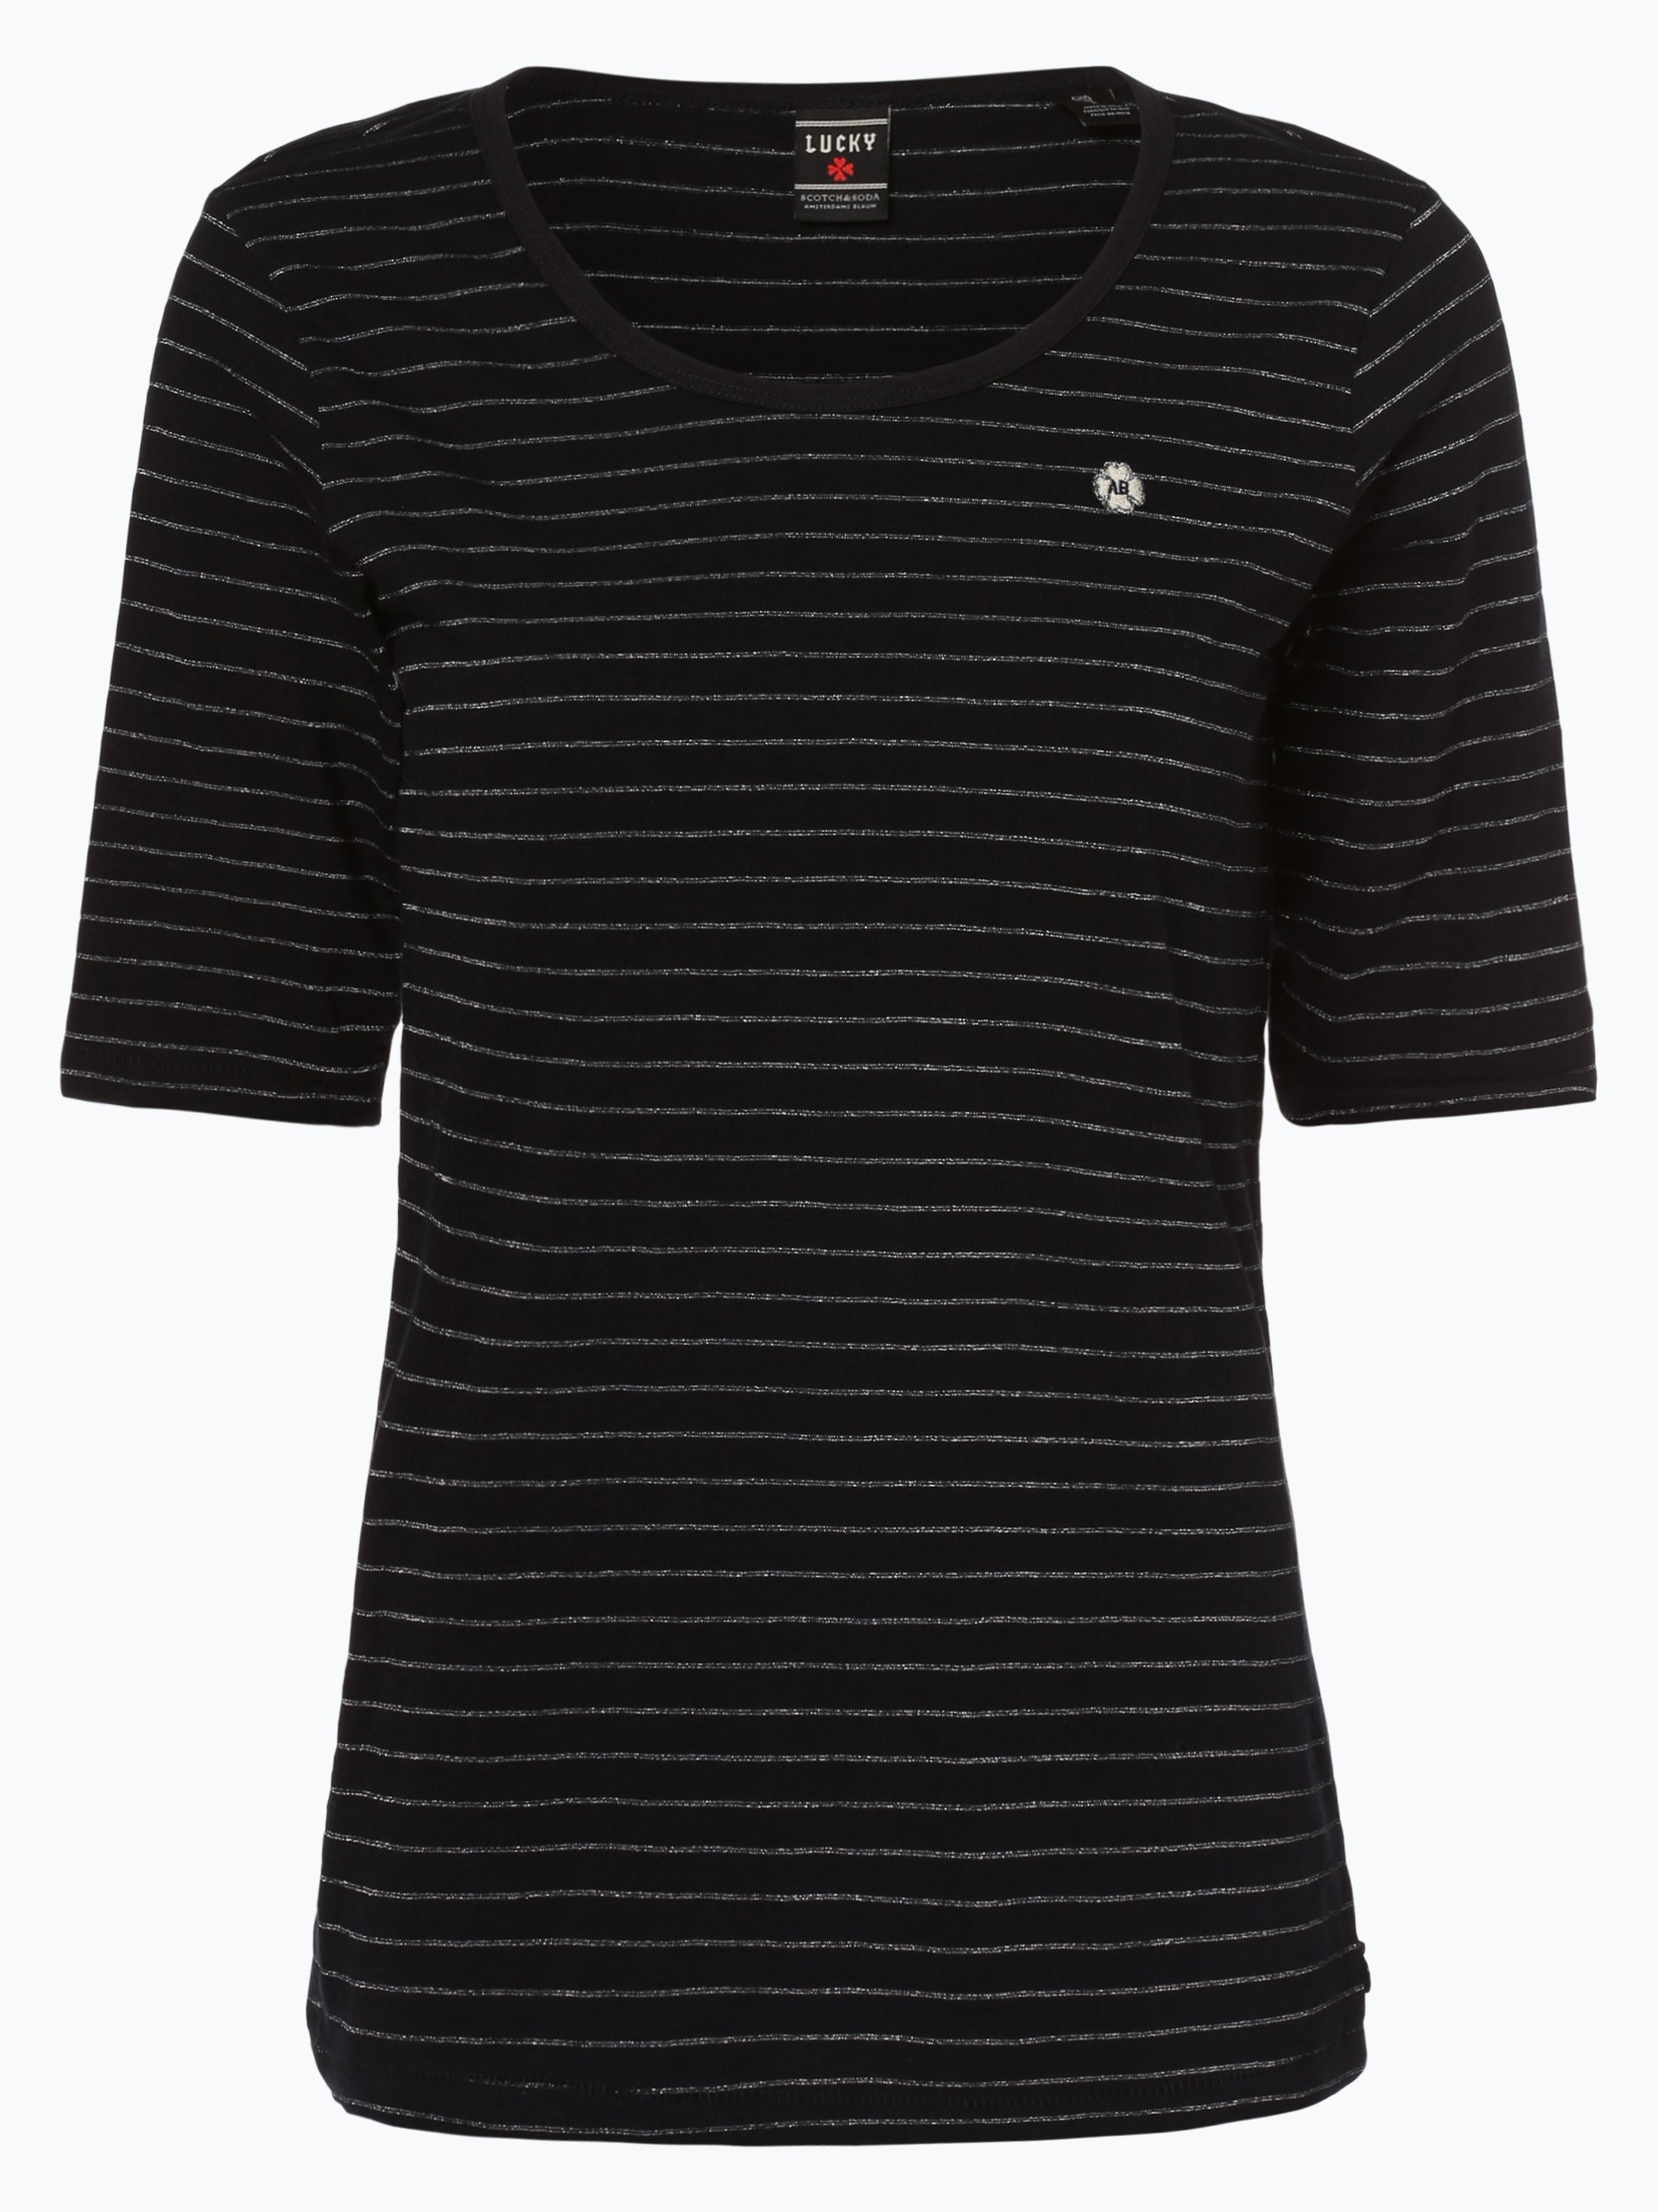 Scotch & Soda Damen T-Shirt